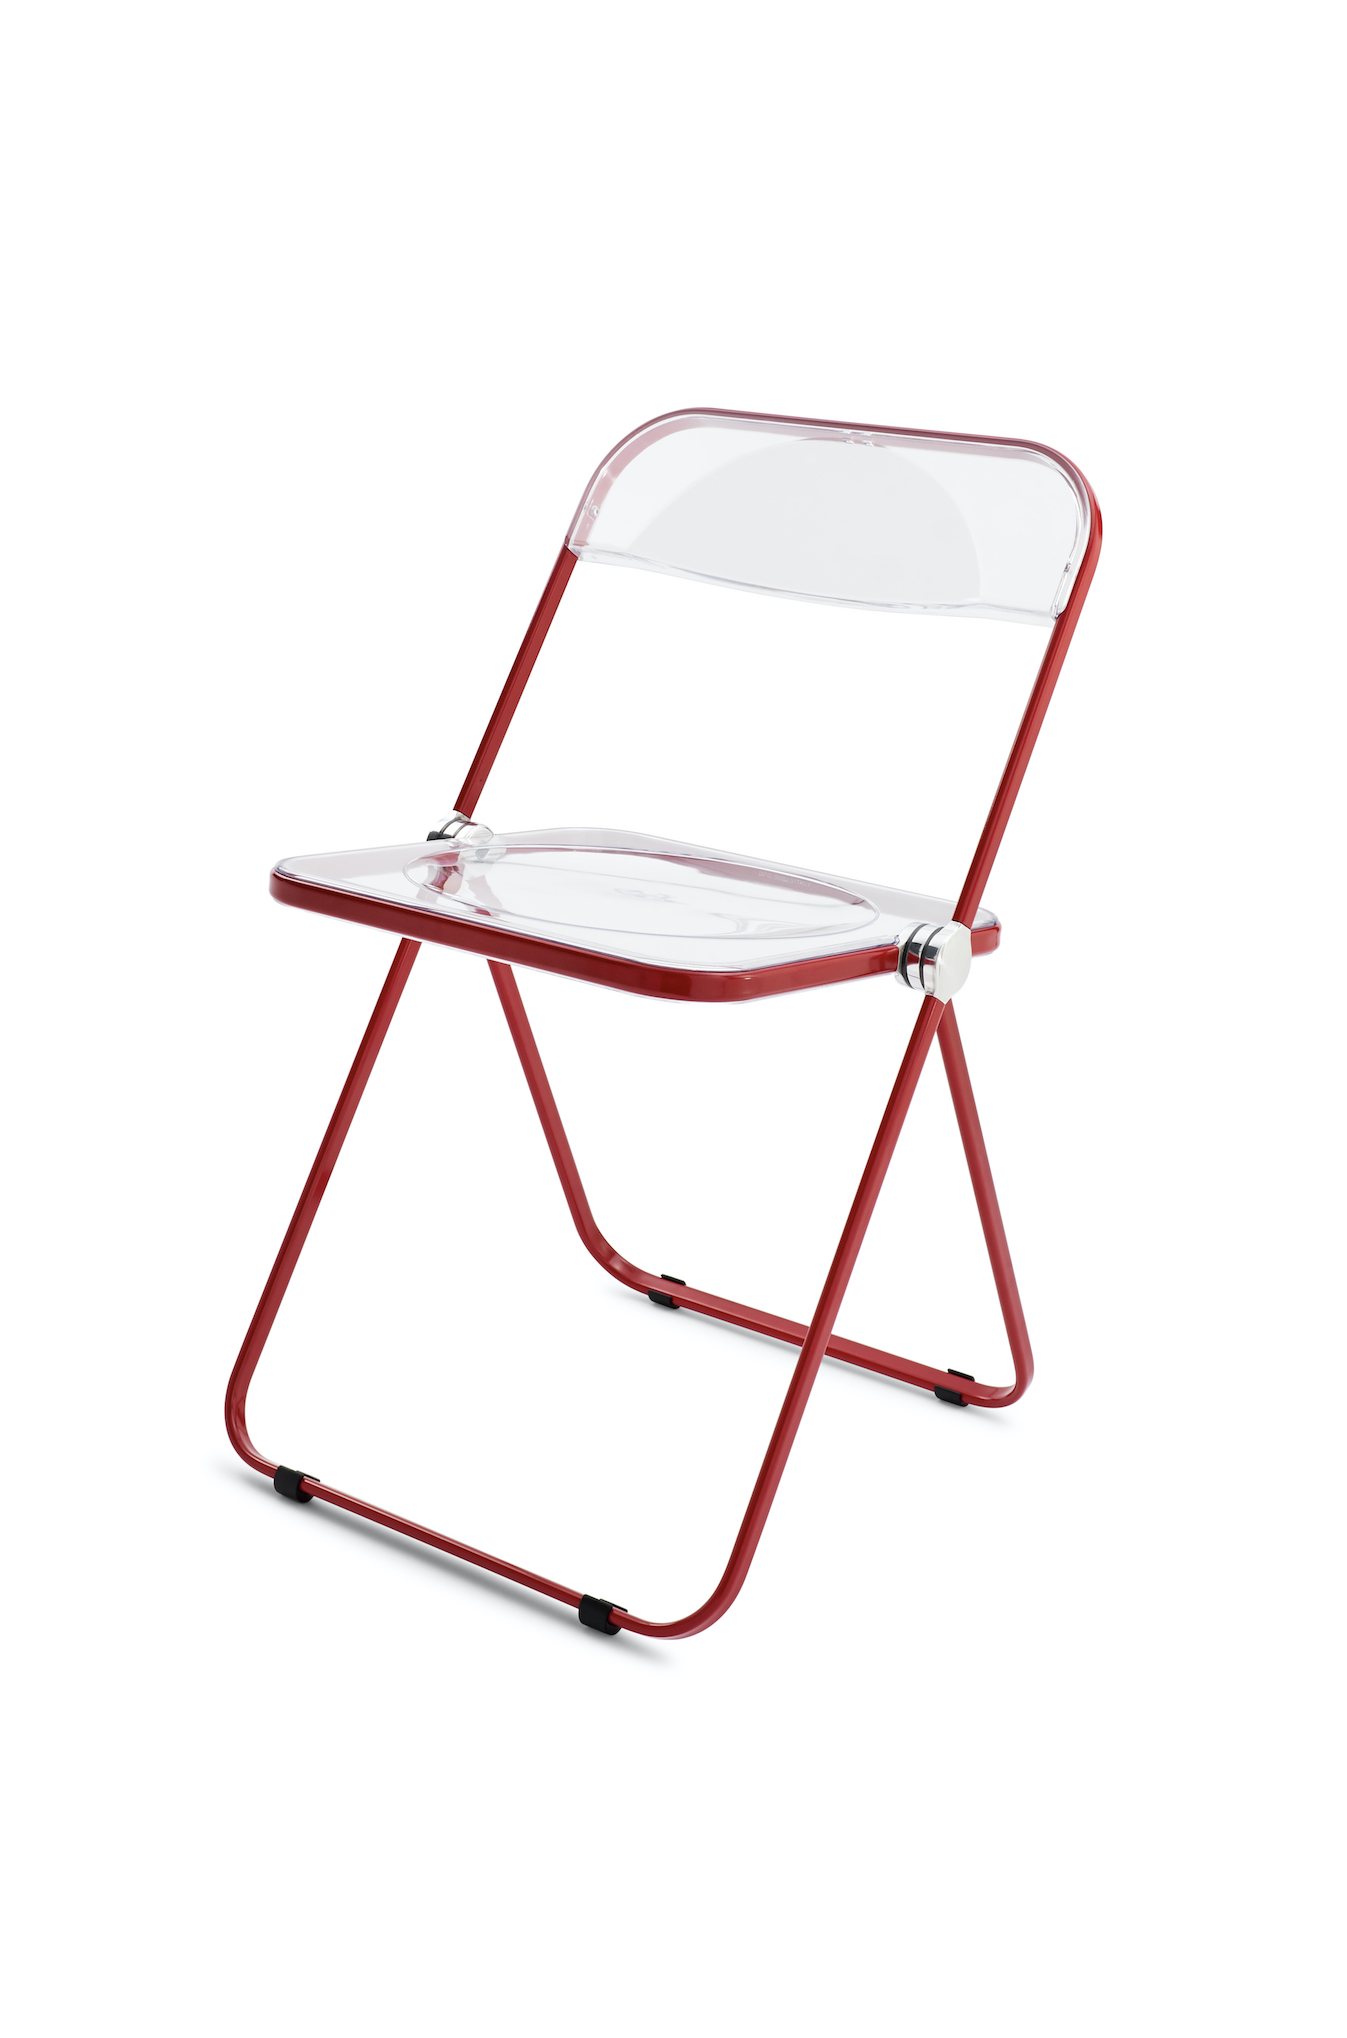 Castelli Folding chair PLIA, red